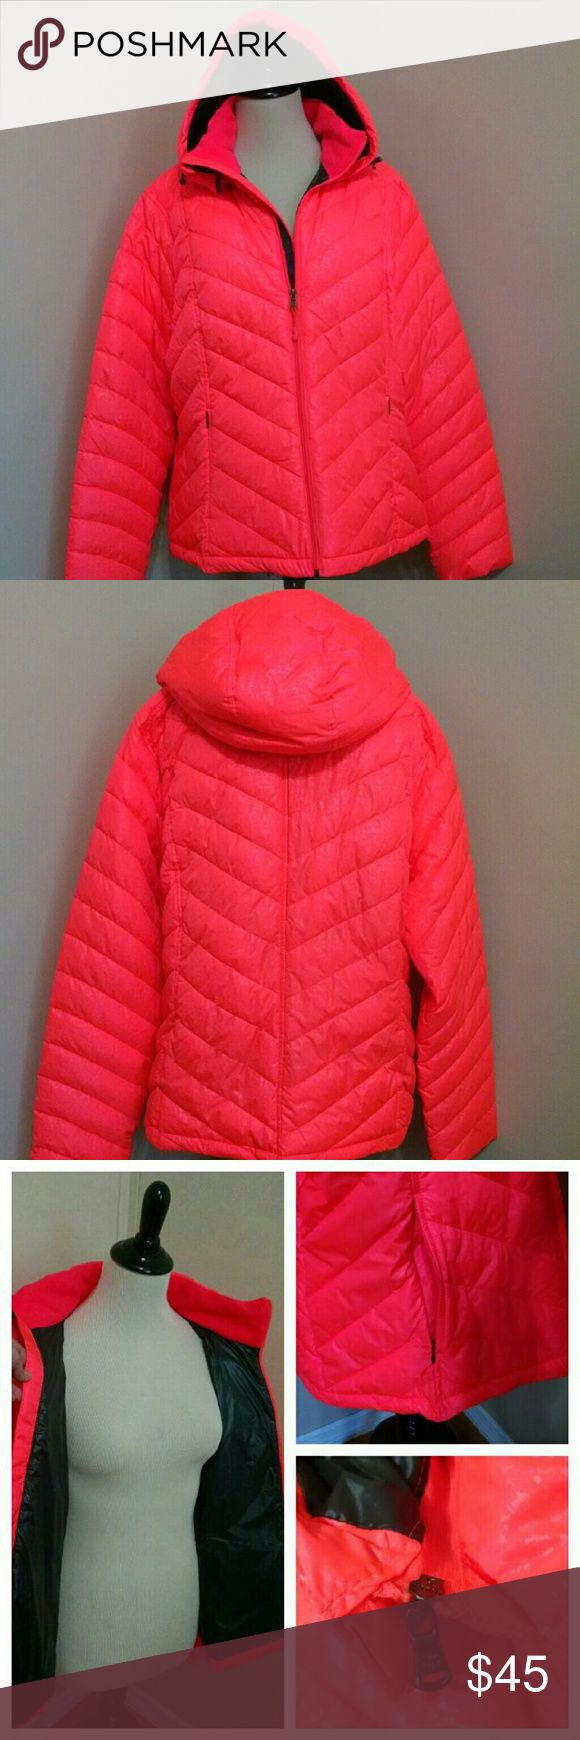 NWOT Hot Coral Super Warm Puffer Jacket This jacket is AWESOME! I bought for a trip up north (I live in S FL) and never went so it's totally wasted in my closet here. This jacket has a removable hood, fleece lined pockets and neckline and is super lightweight and warm!!! Best part is the notice me shade of hot coral! Size XXL and fits me comfortably and I wear a 14/16 in LB or size 1 in Torrid. Make an offer to brighten your dreary winter day with this awesome jacket! tek gear Jackets…